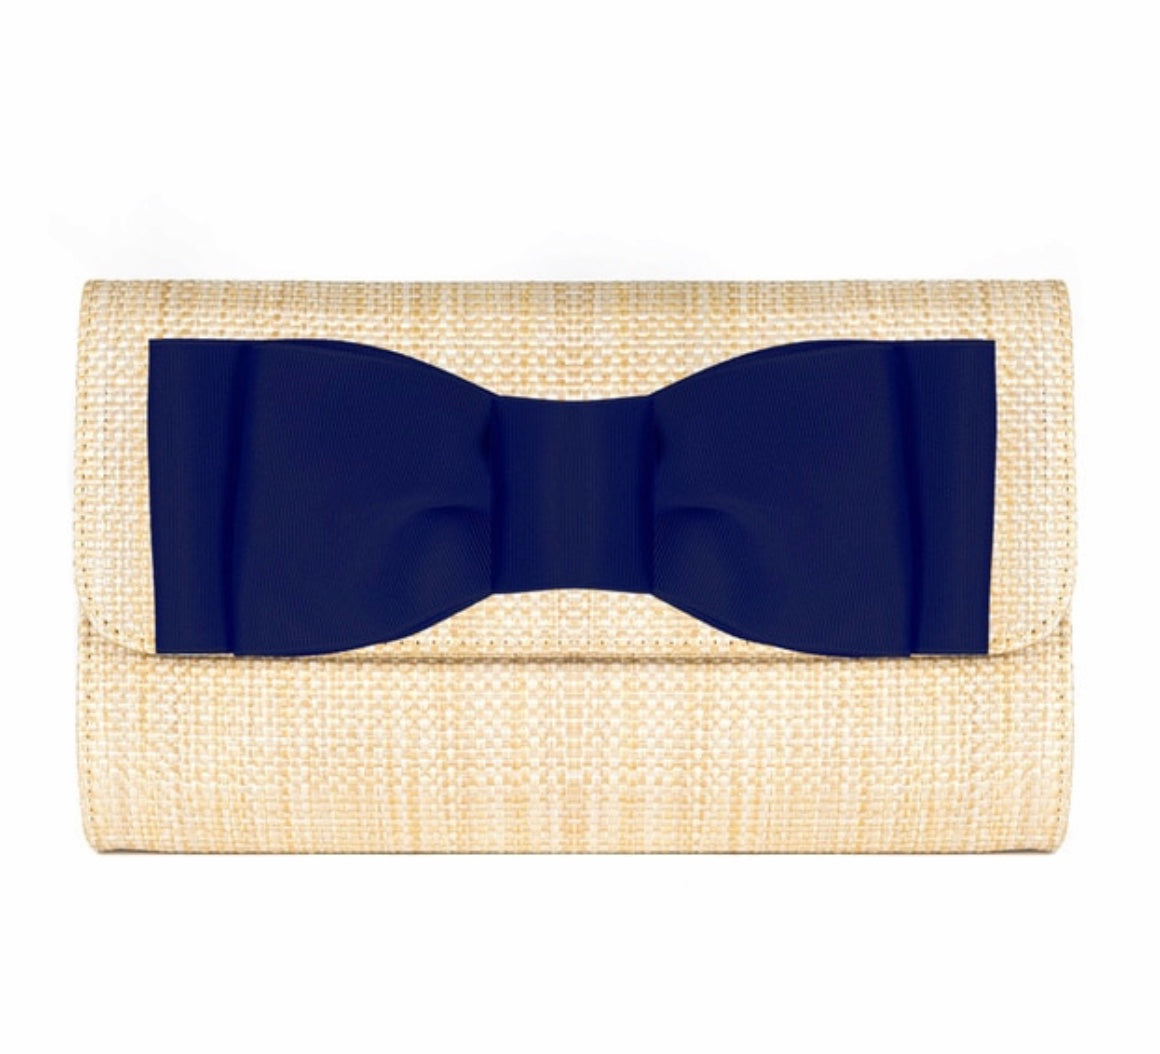 Avery Clutch with Navy Bow By Lisi Lerch